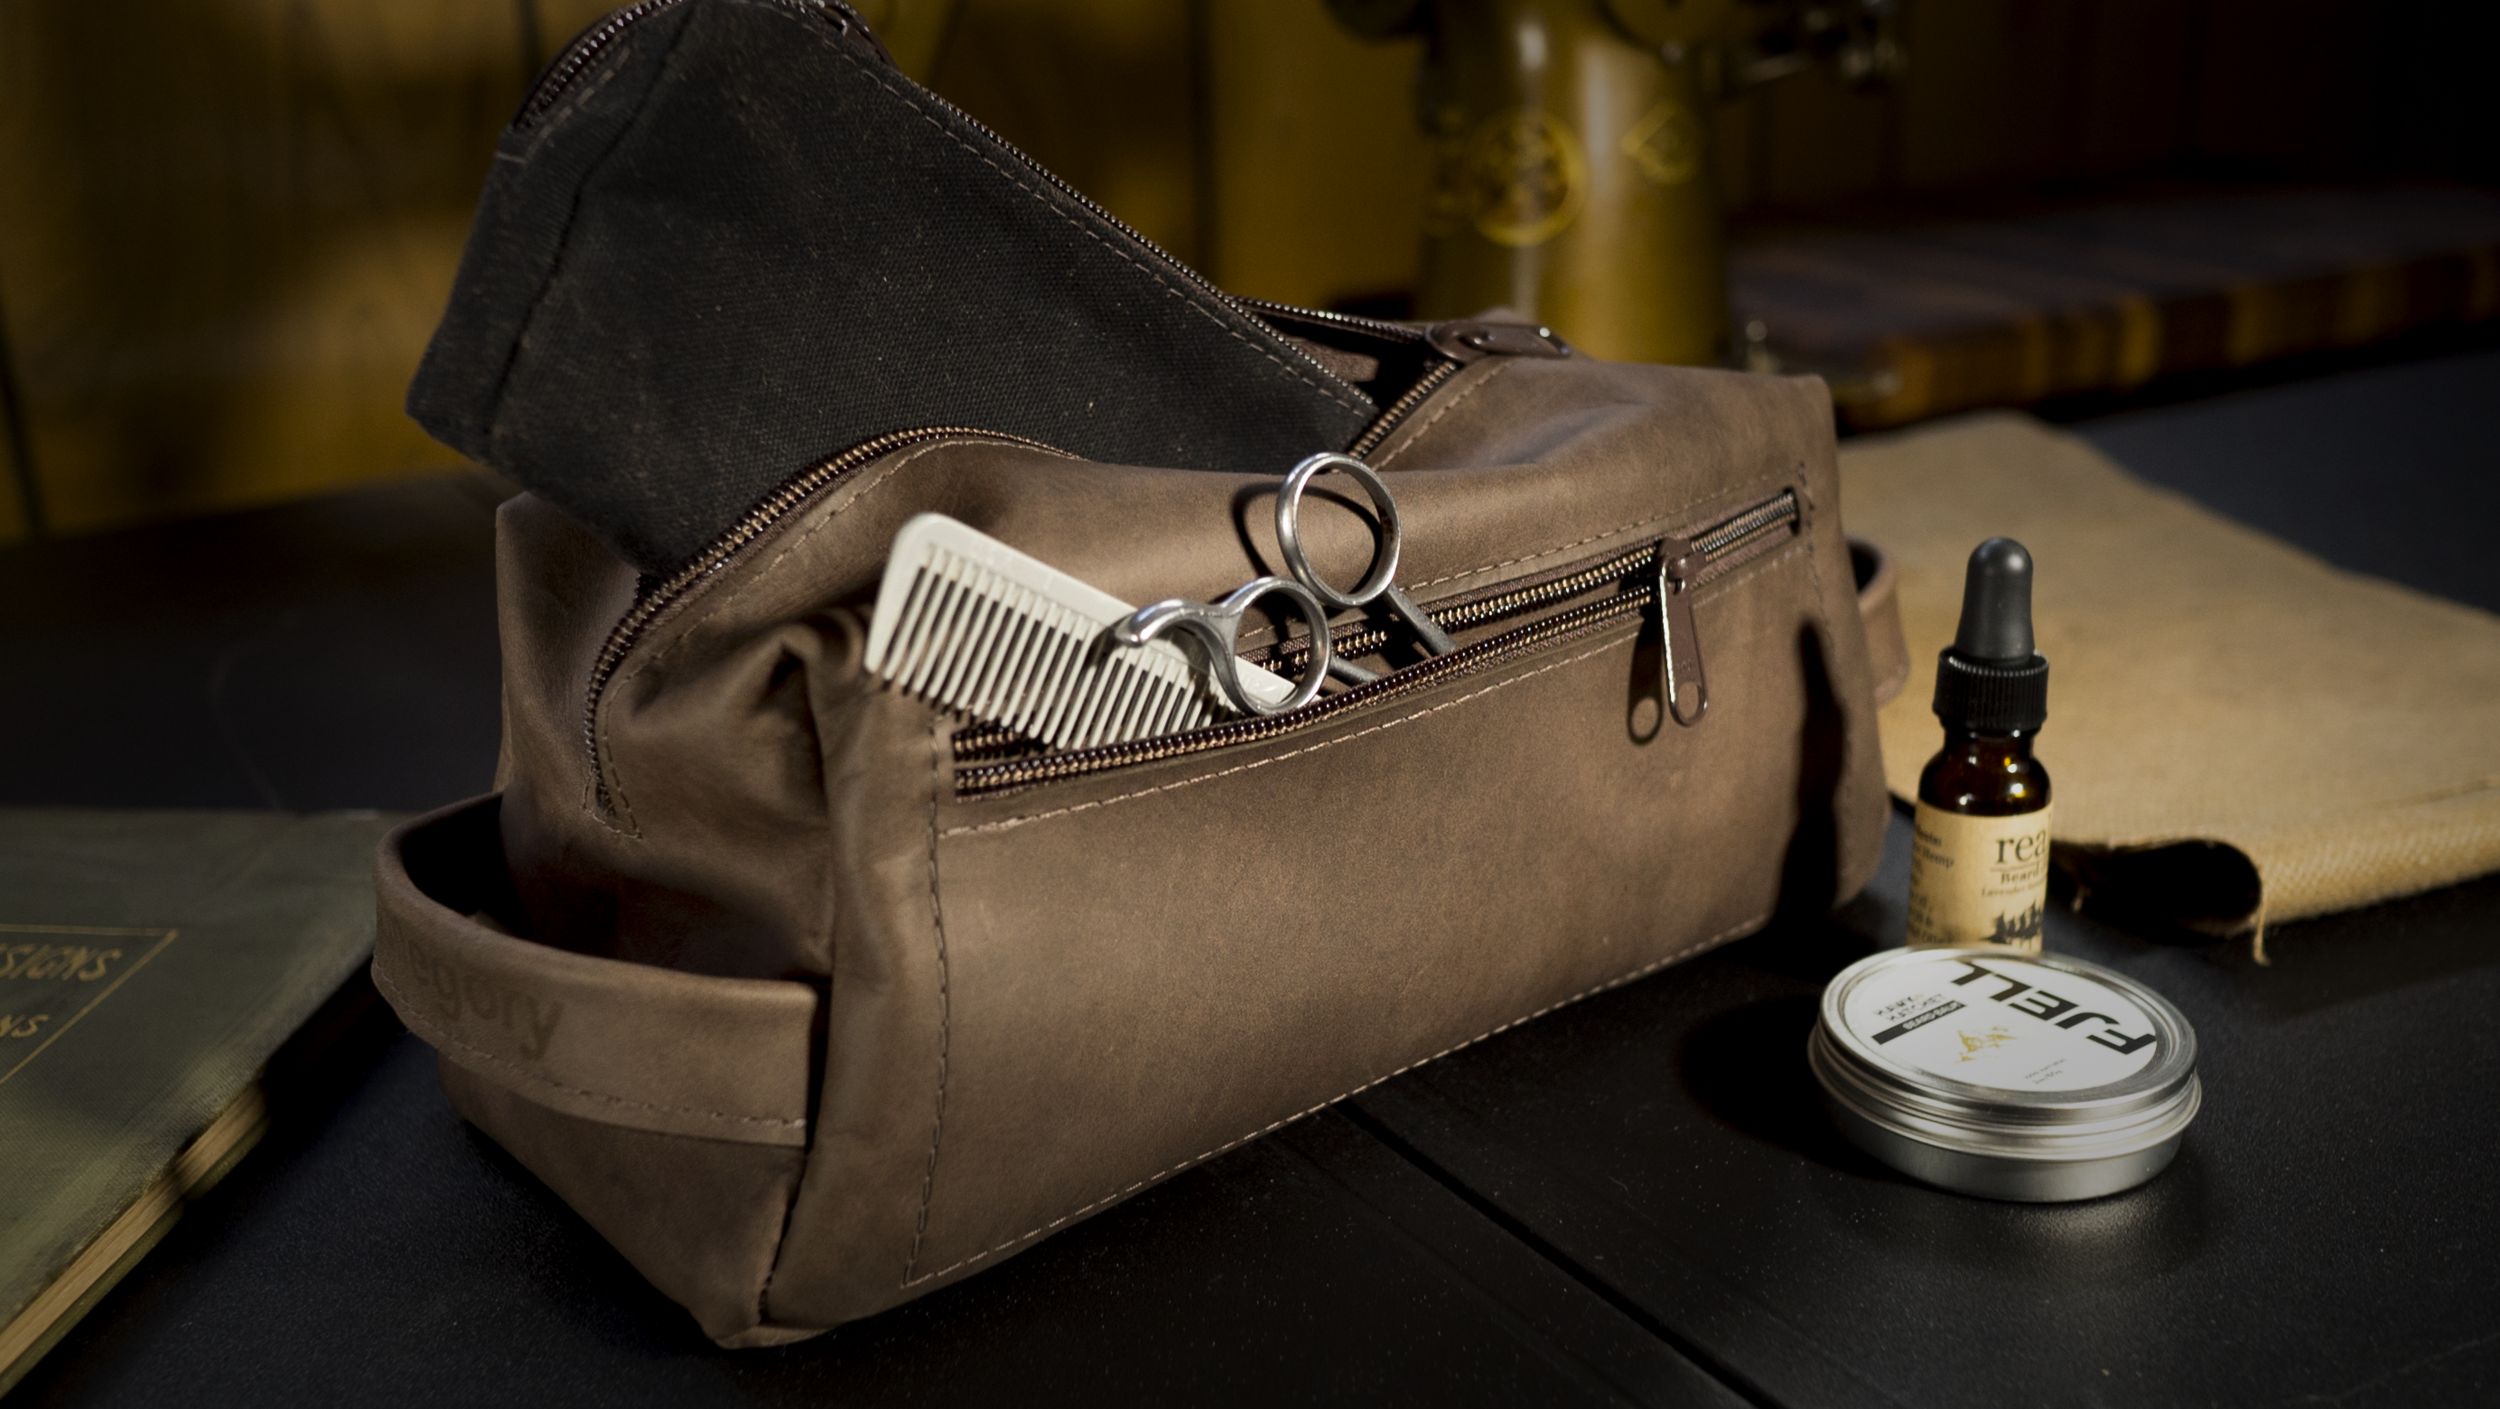 The Perfect Dopp Kit - Waterproof Ecuadorian Latigo Leather. Classic Design. Absurd durability.